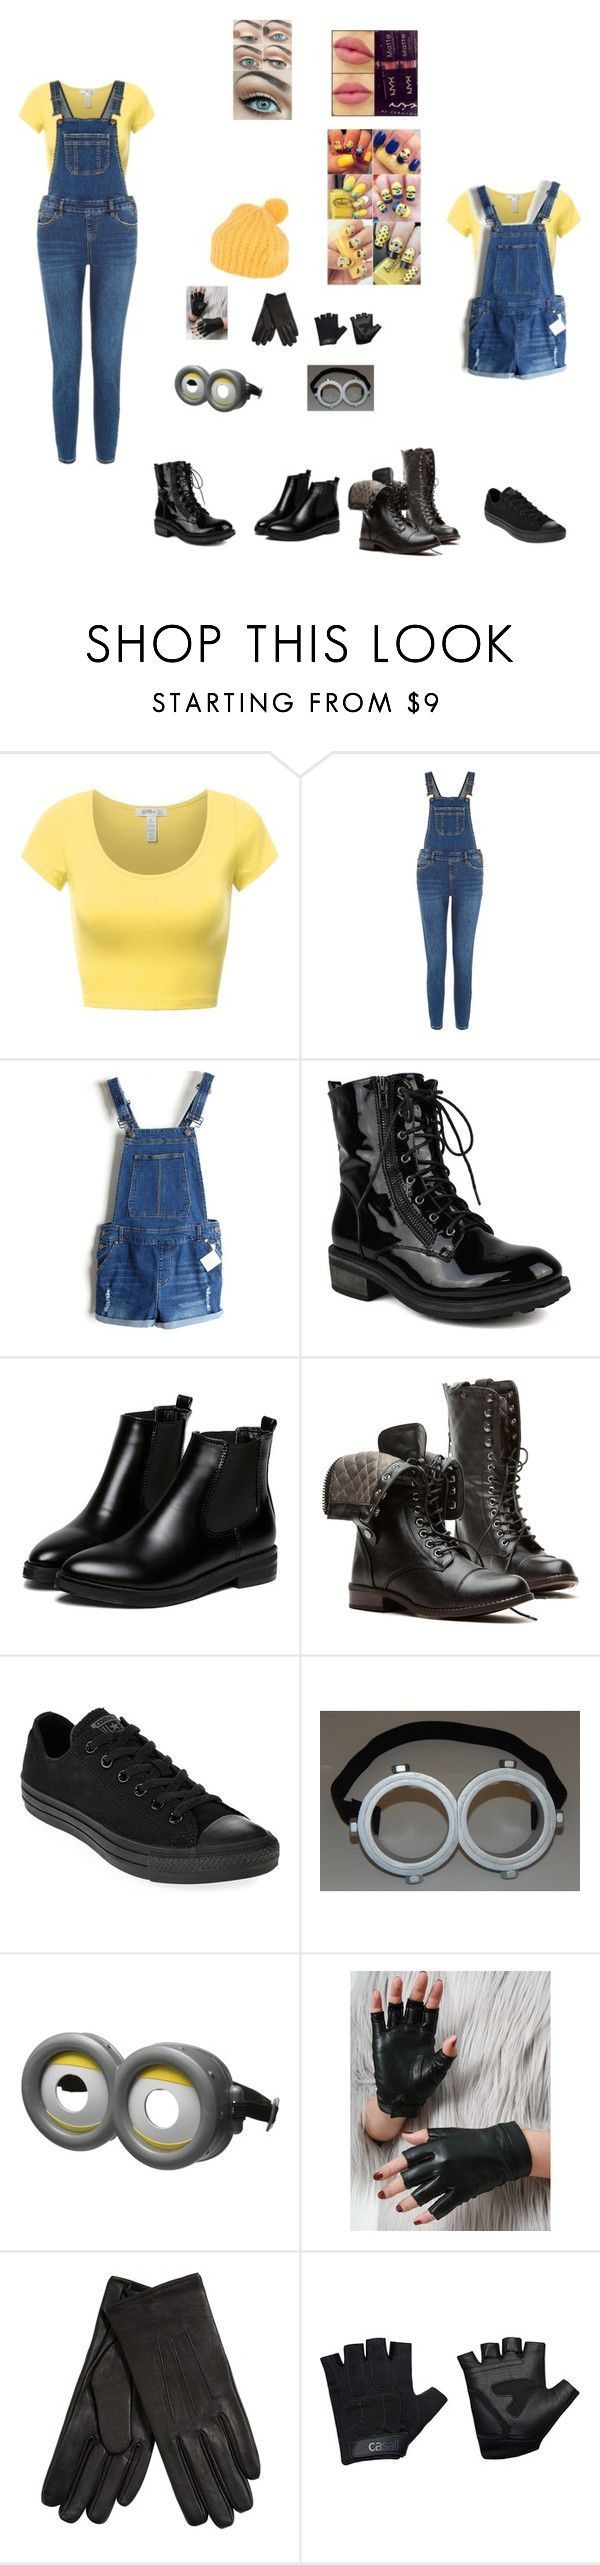 """Minion Costume"" by brendalcorrea on Polyvore featuring Converse, Isotoner, Casall, Dondup and NYX"